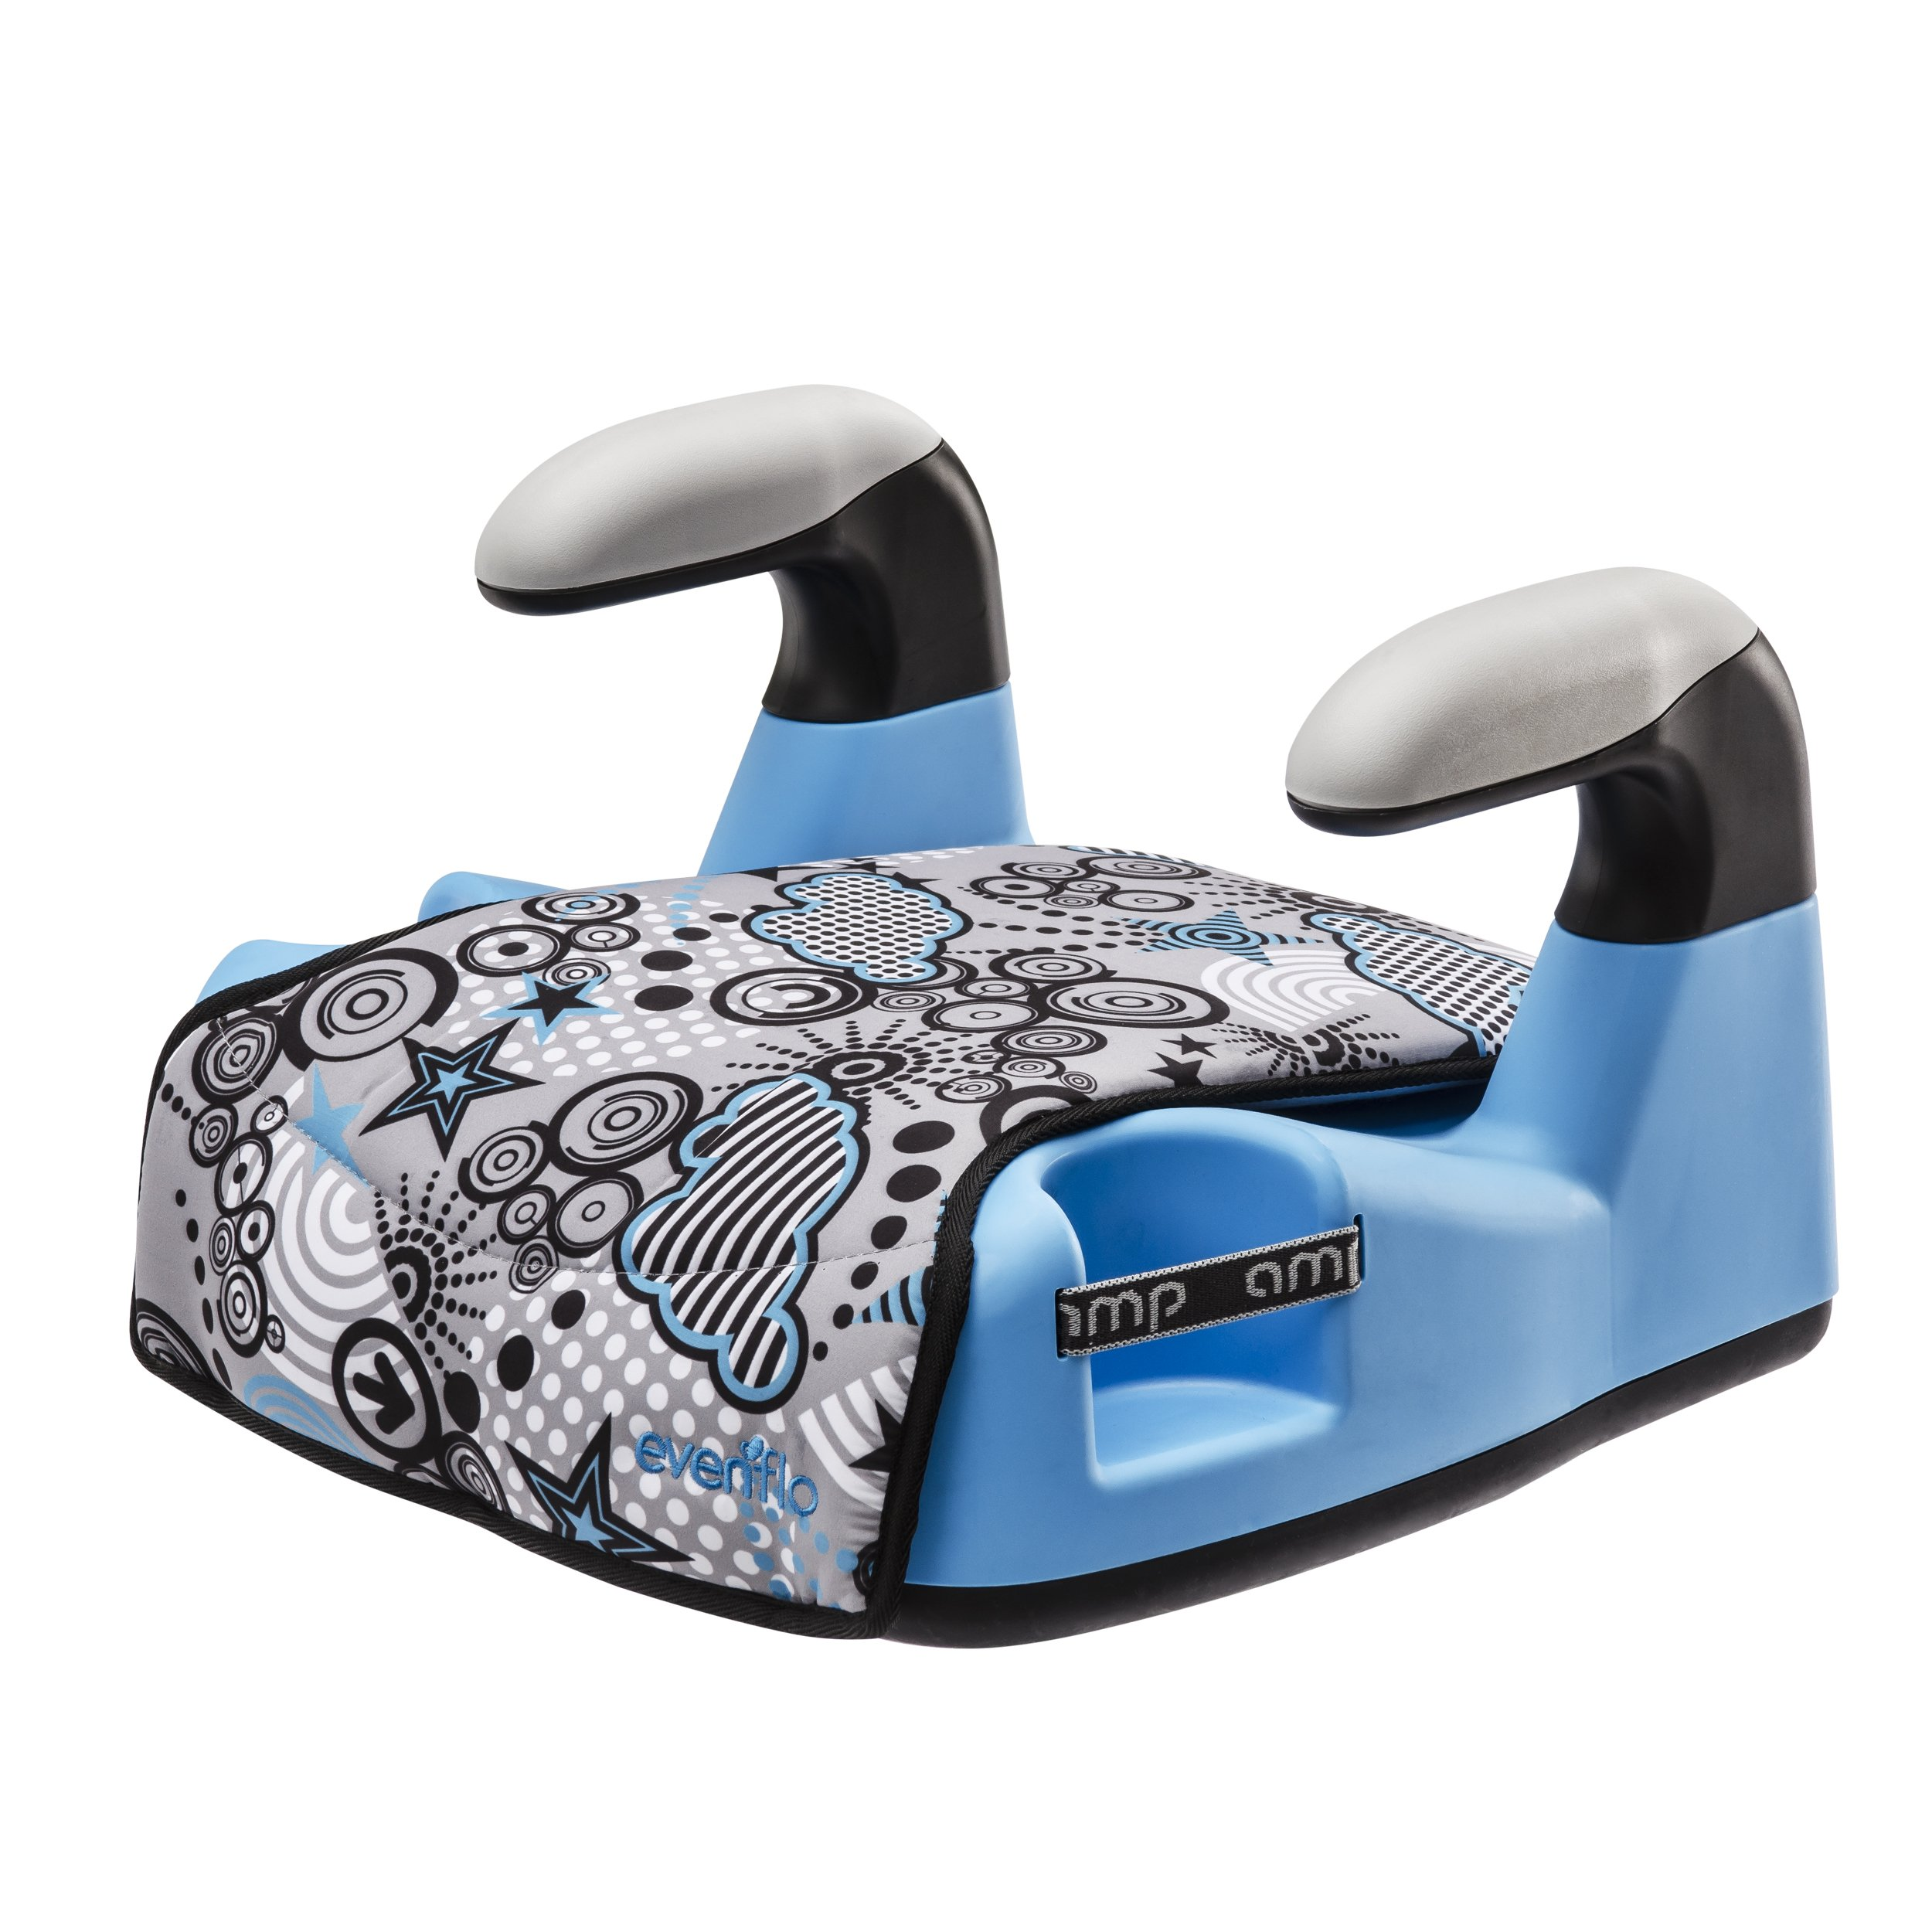 Evenflo Amp Select Car Booster Seat Blue Flames